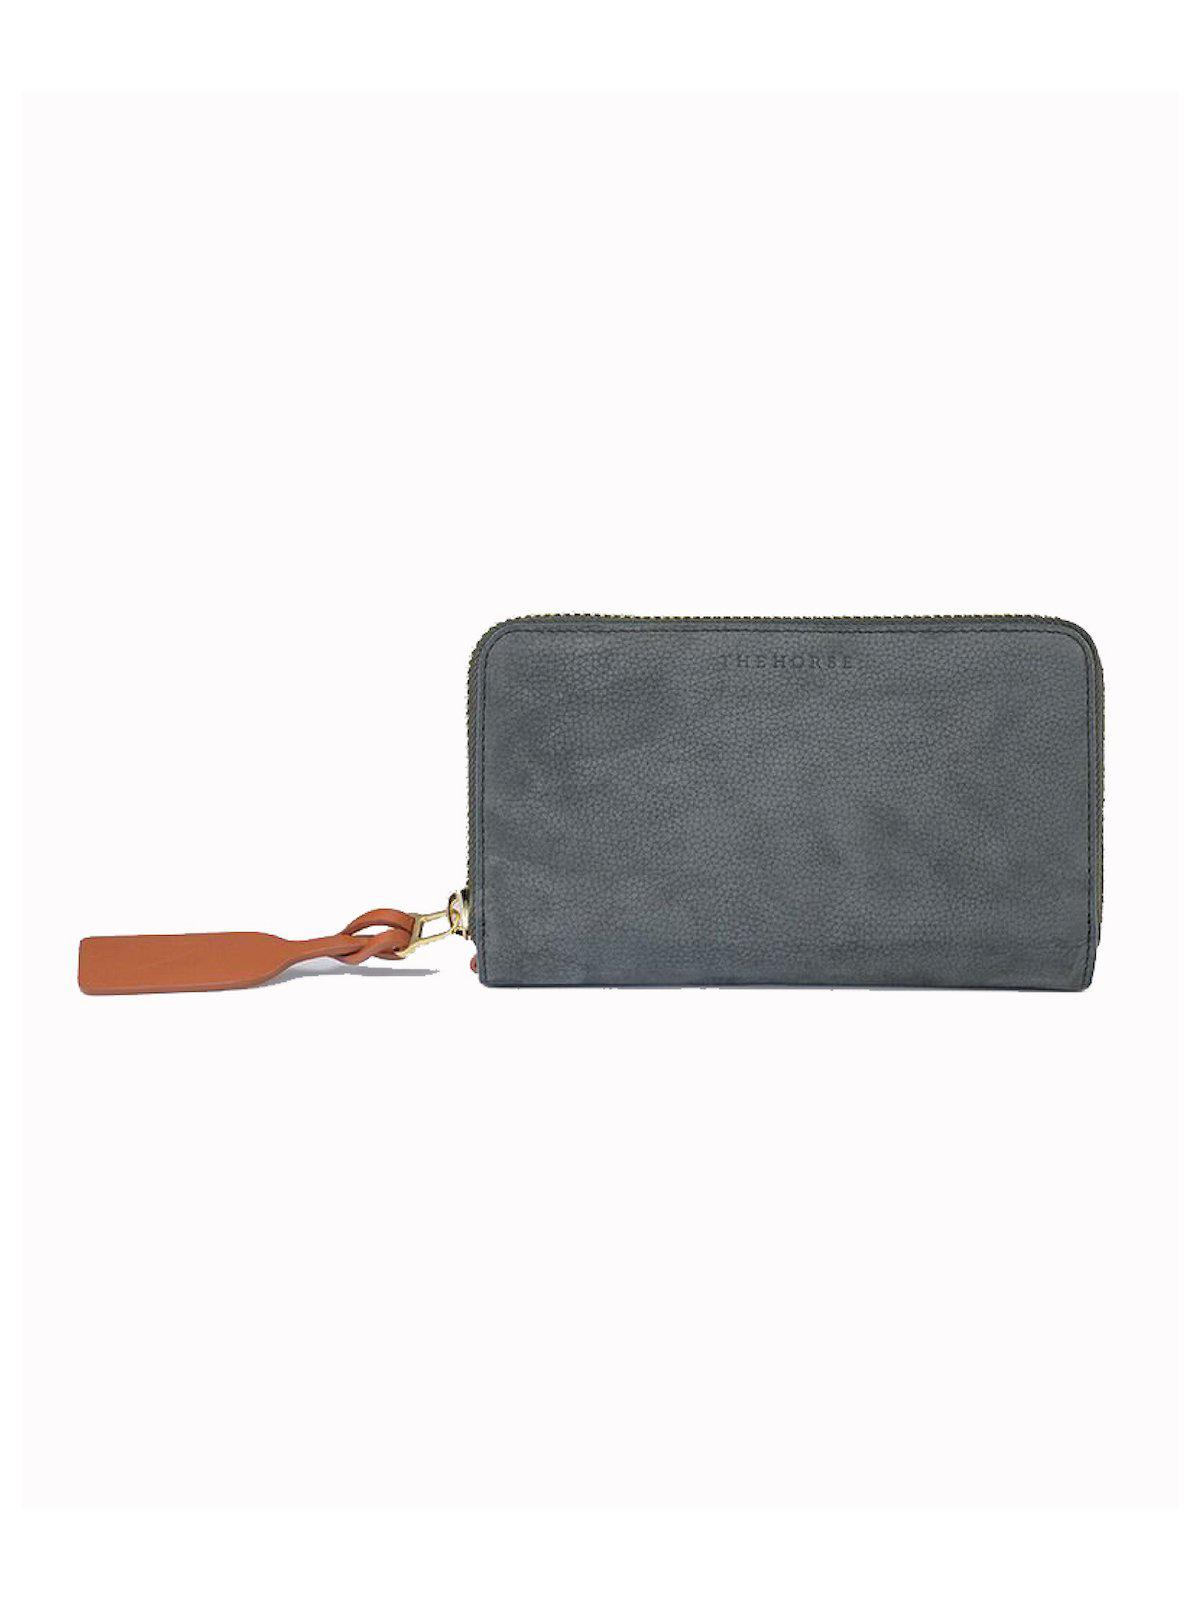 The Horse Block Wallet Moss Green - MORE by Morello Indonesia